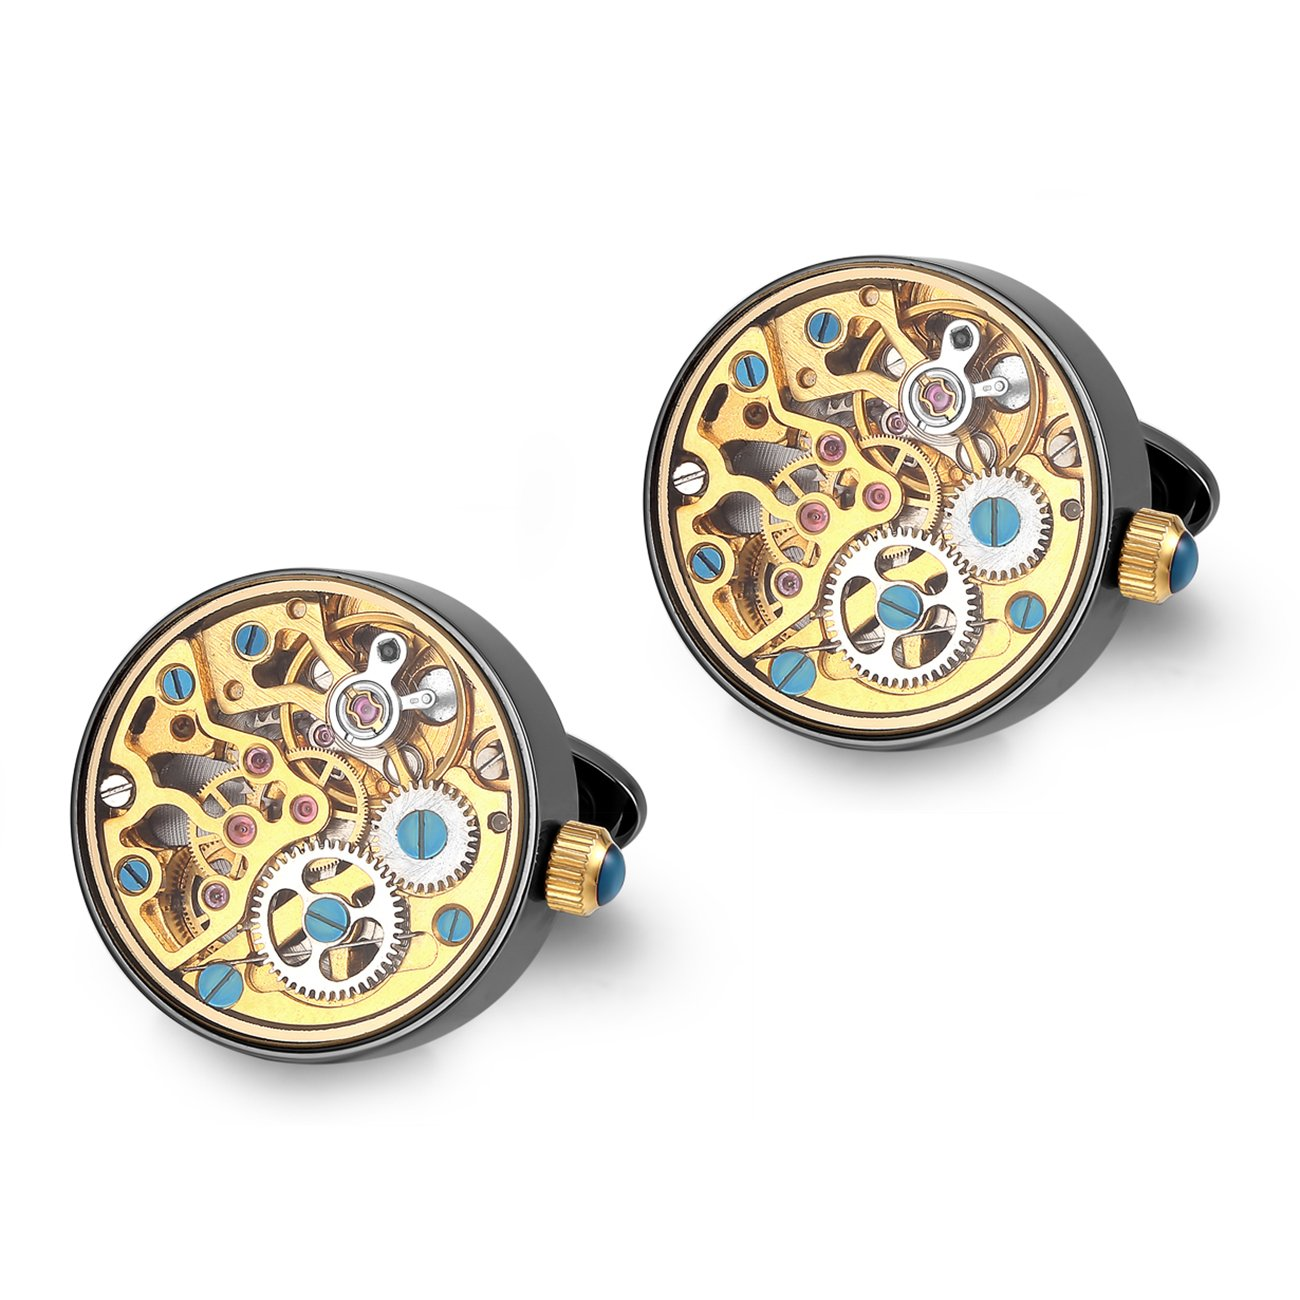 Dich Creat Men's Stainless Steel Black PVD Working Movement Cufflinks Covered with Glass by Dich Creat